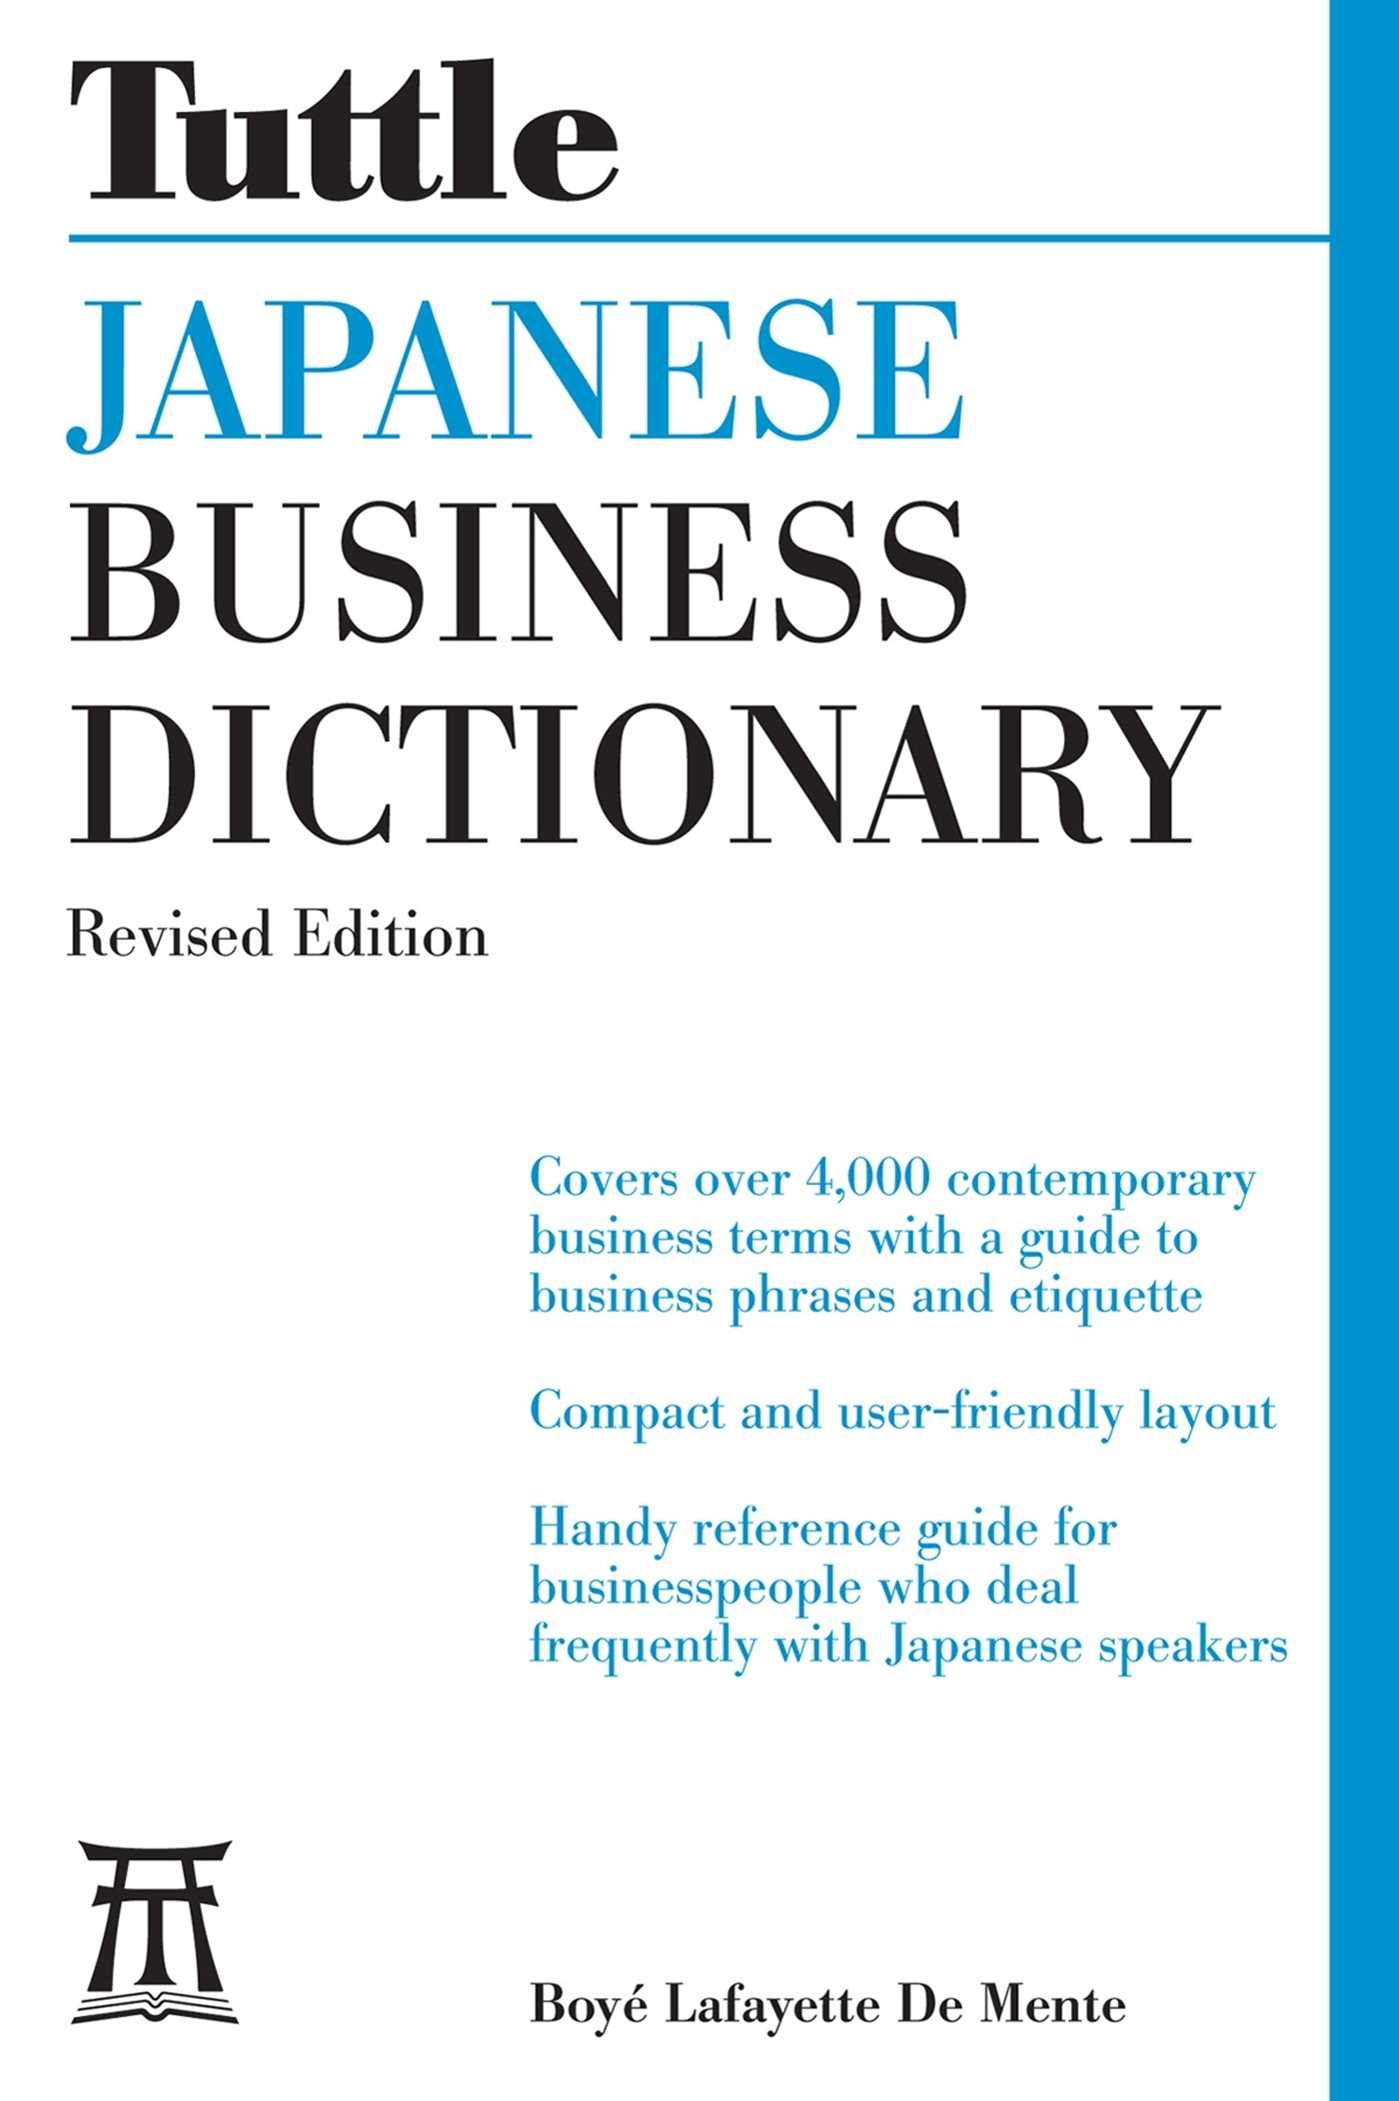 Tuttle Japanese Business Dictionary Revised Edition: Boye Lafayette